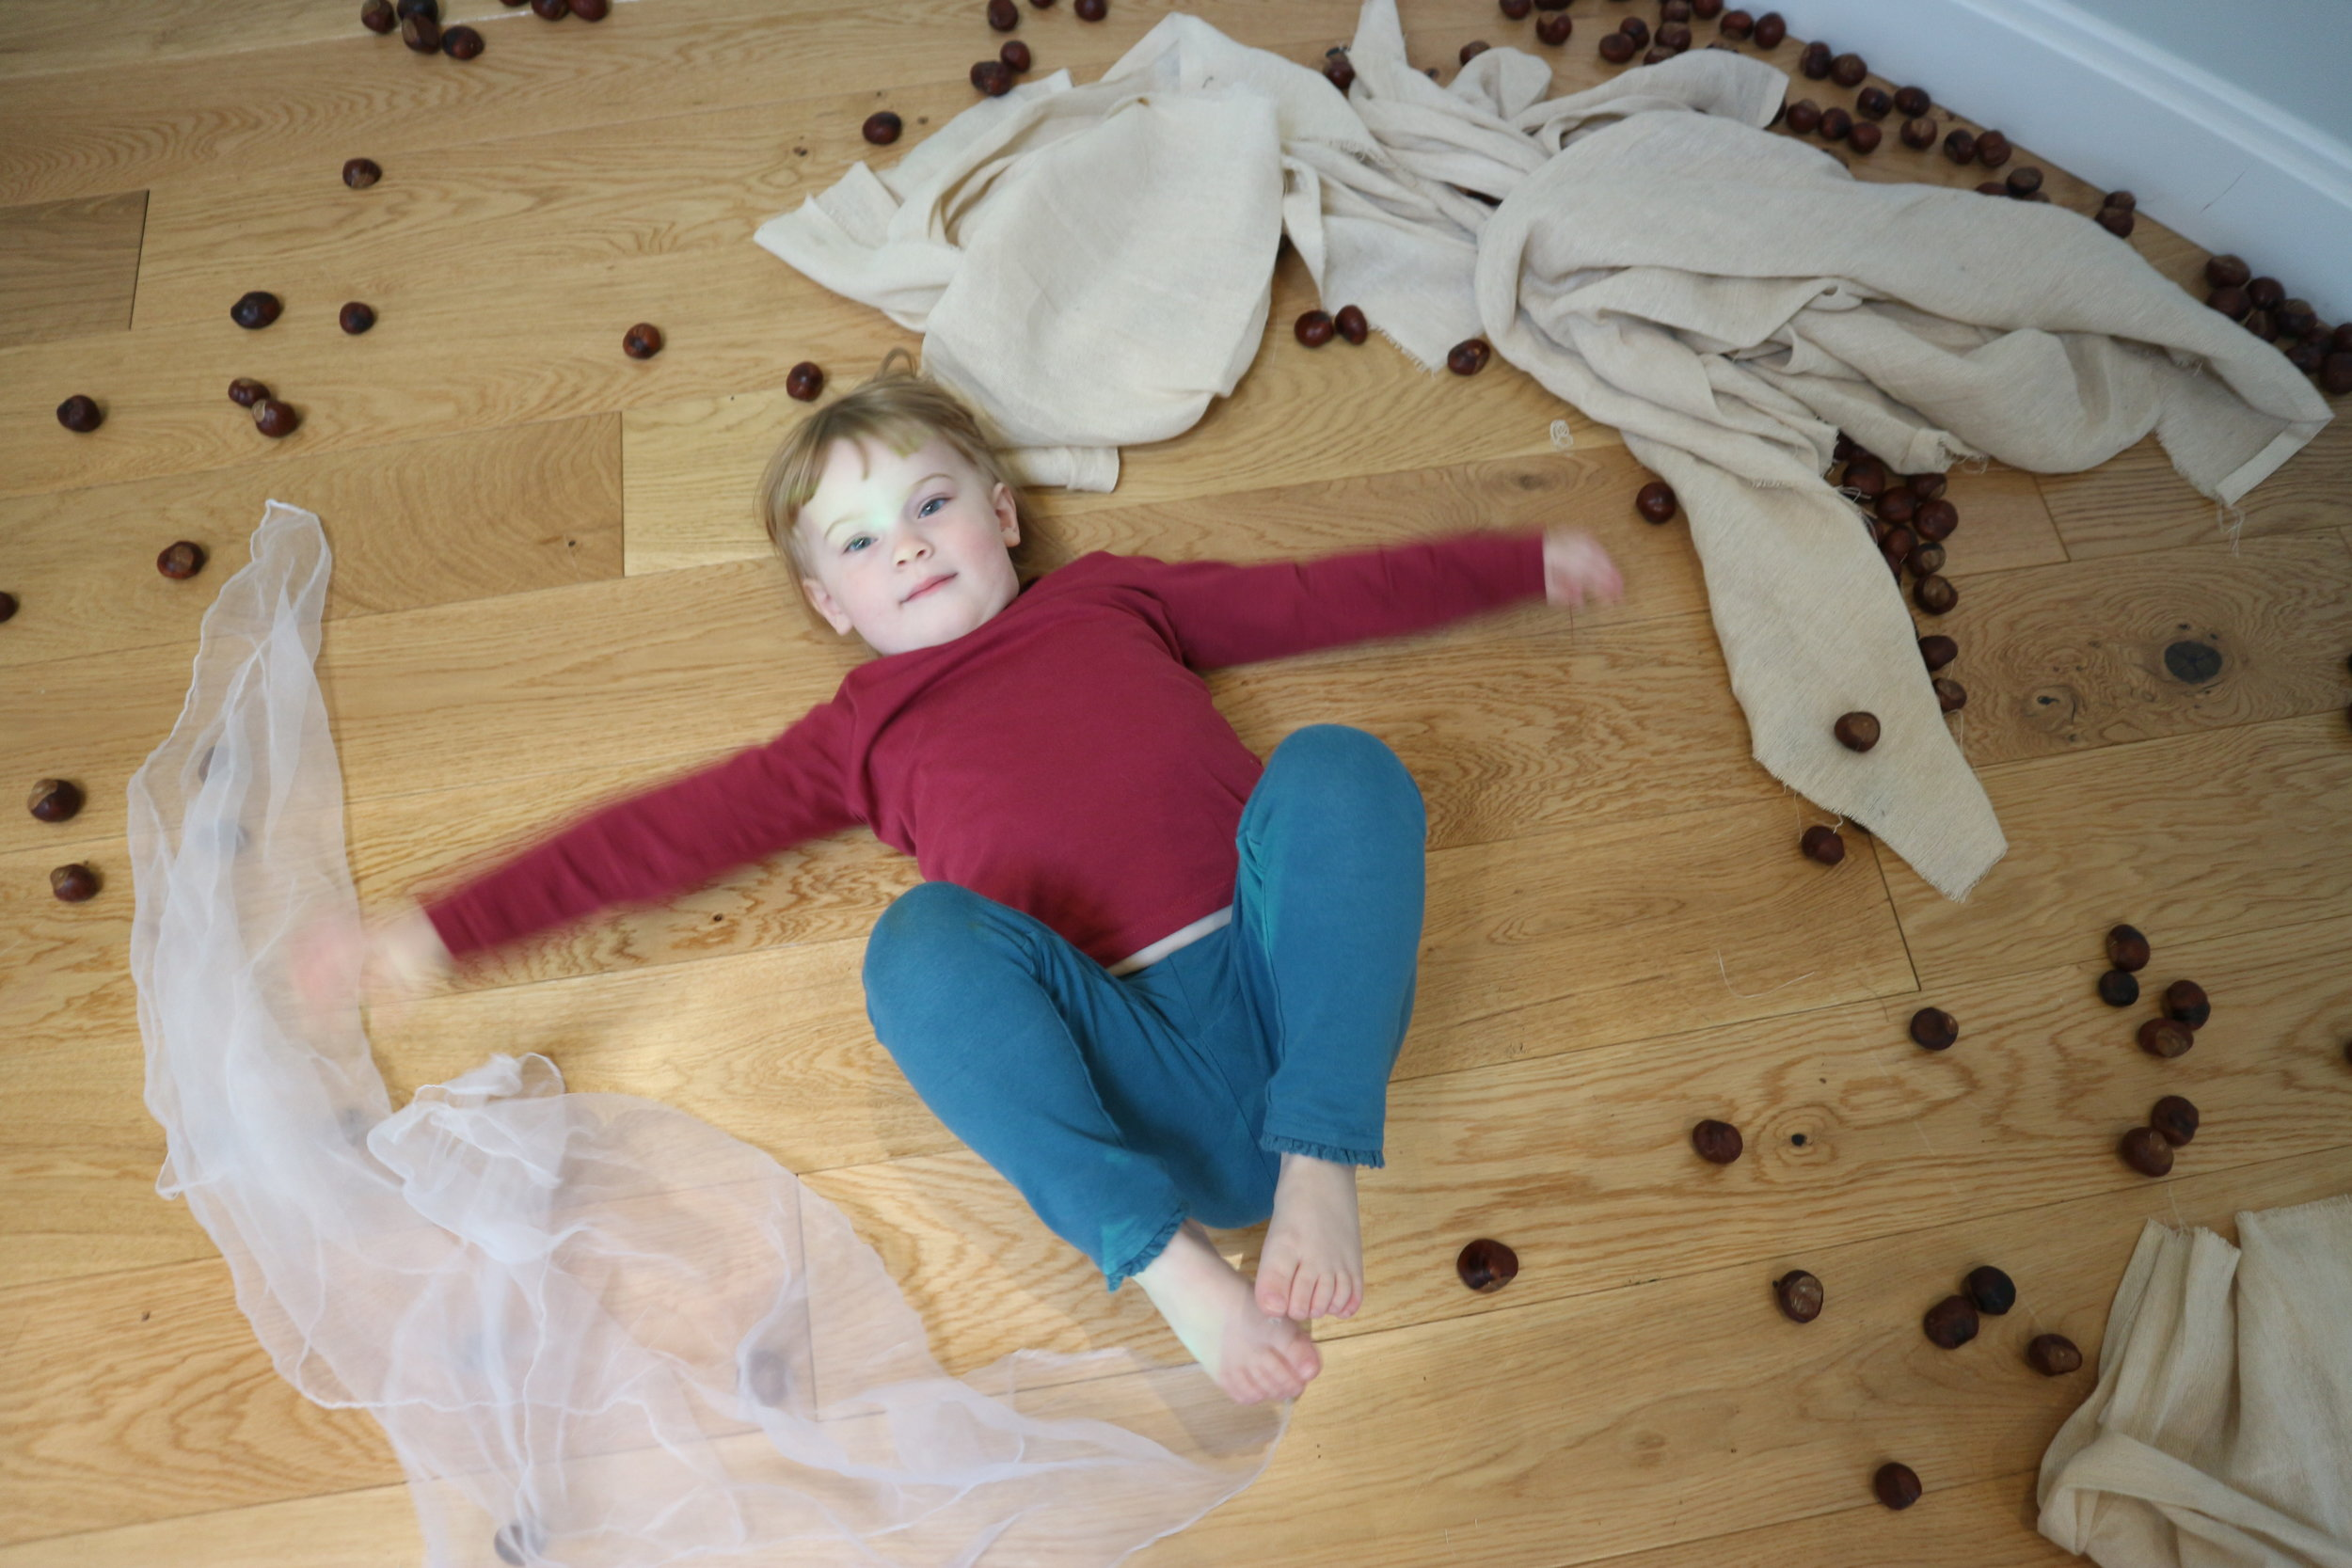 Autumn Angels - Immersed in the sensory materials, whooshing arms and legs